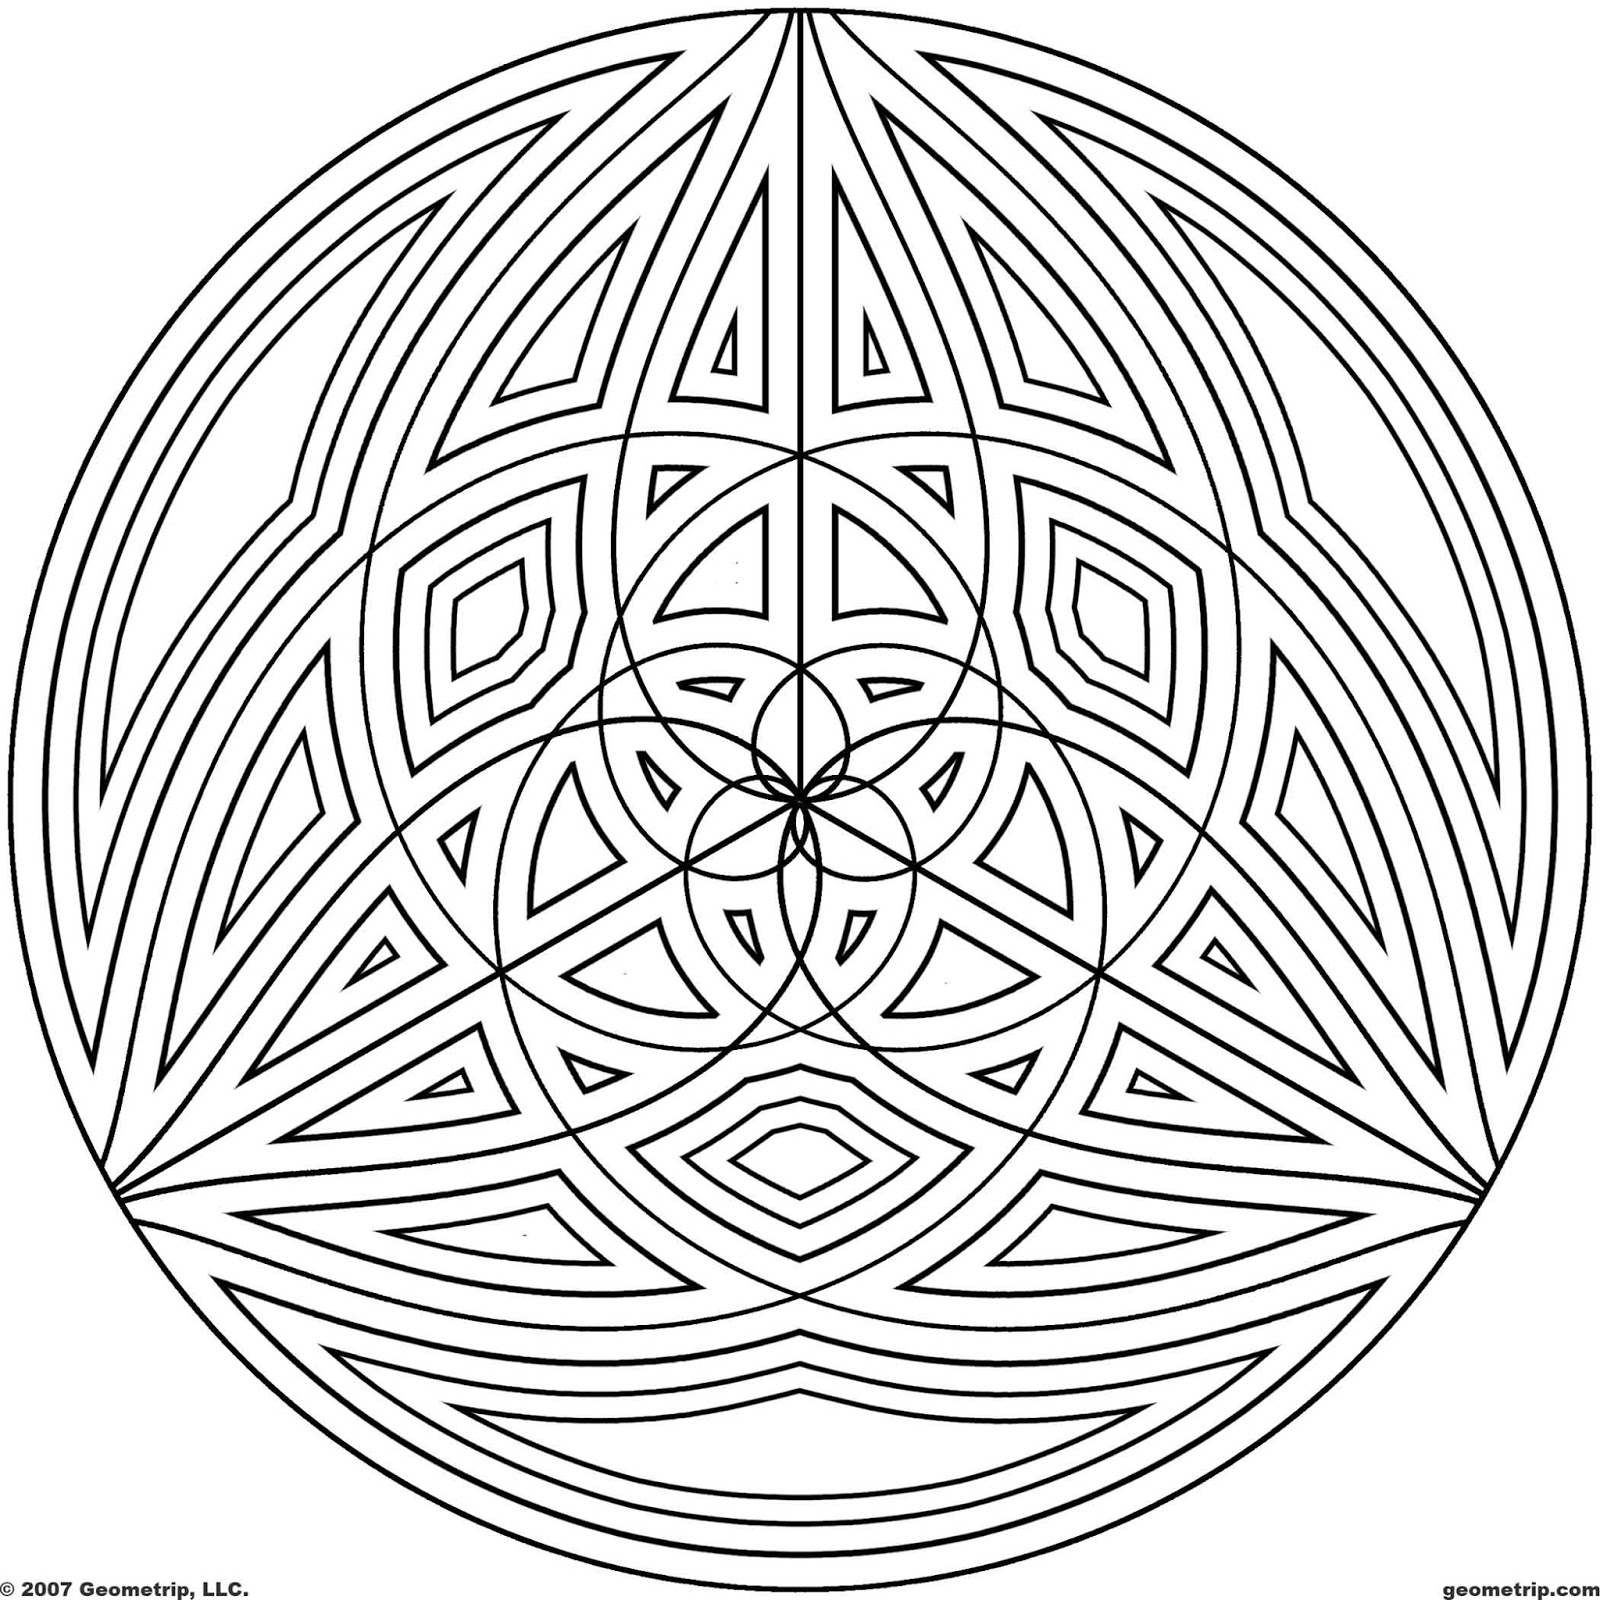 coloring book pages designs cool design coloring pages getcoloringpagescom book coloring designs pages